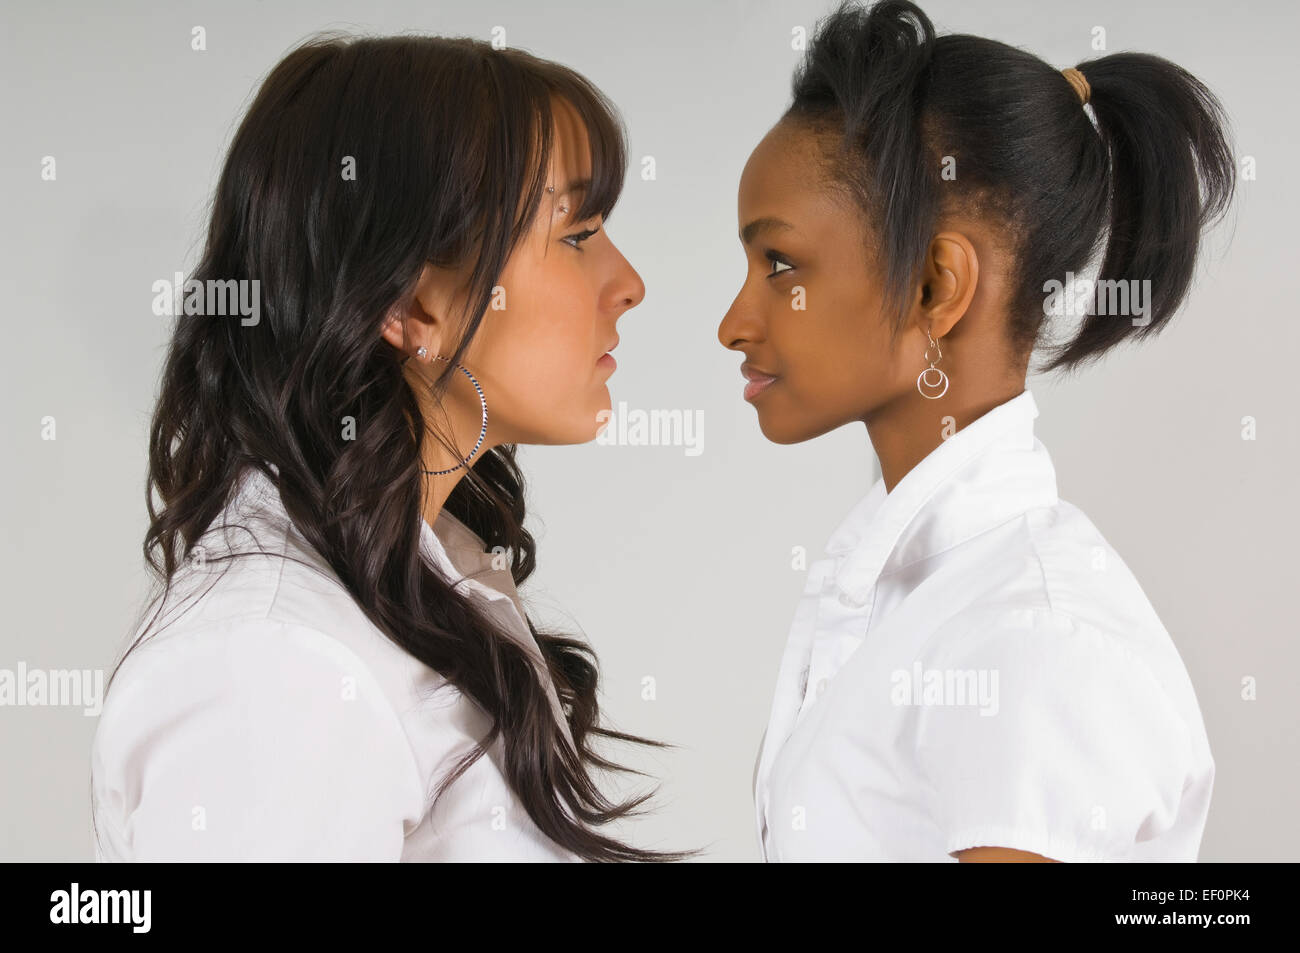 fd9629404b Two young women staring at each other Stock Photo  78079096 - Alamy